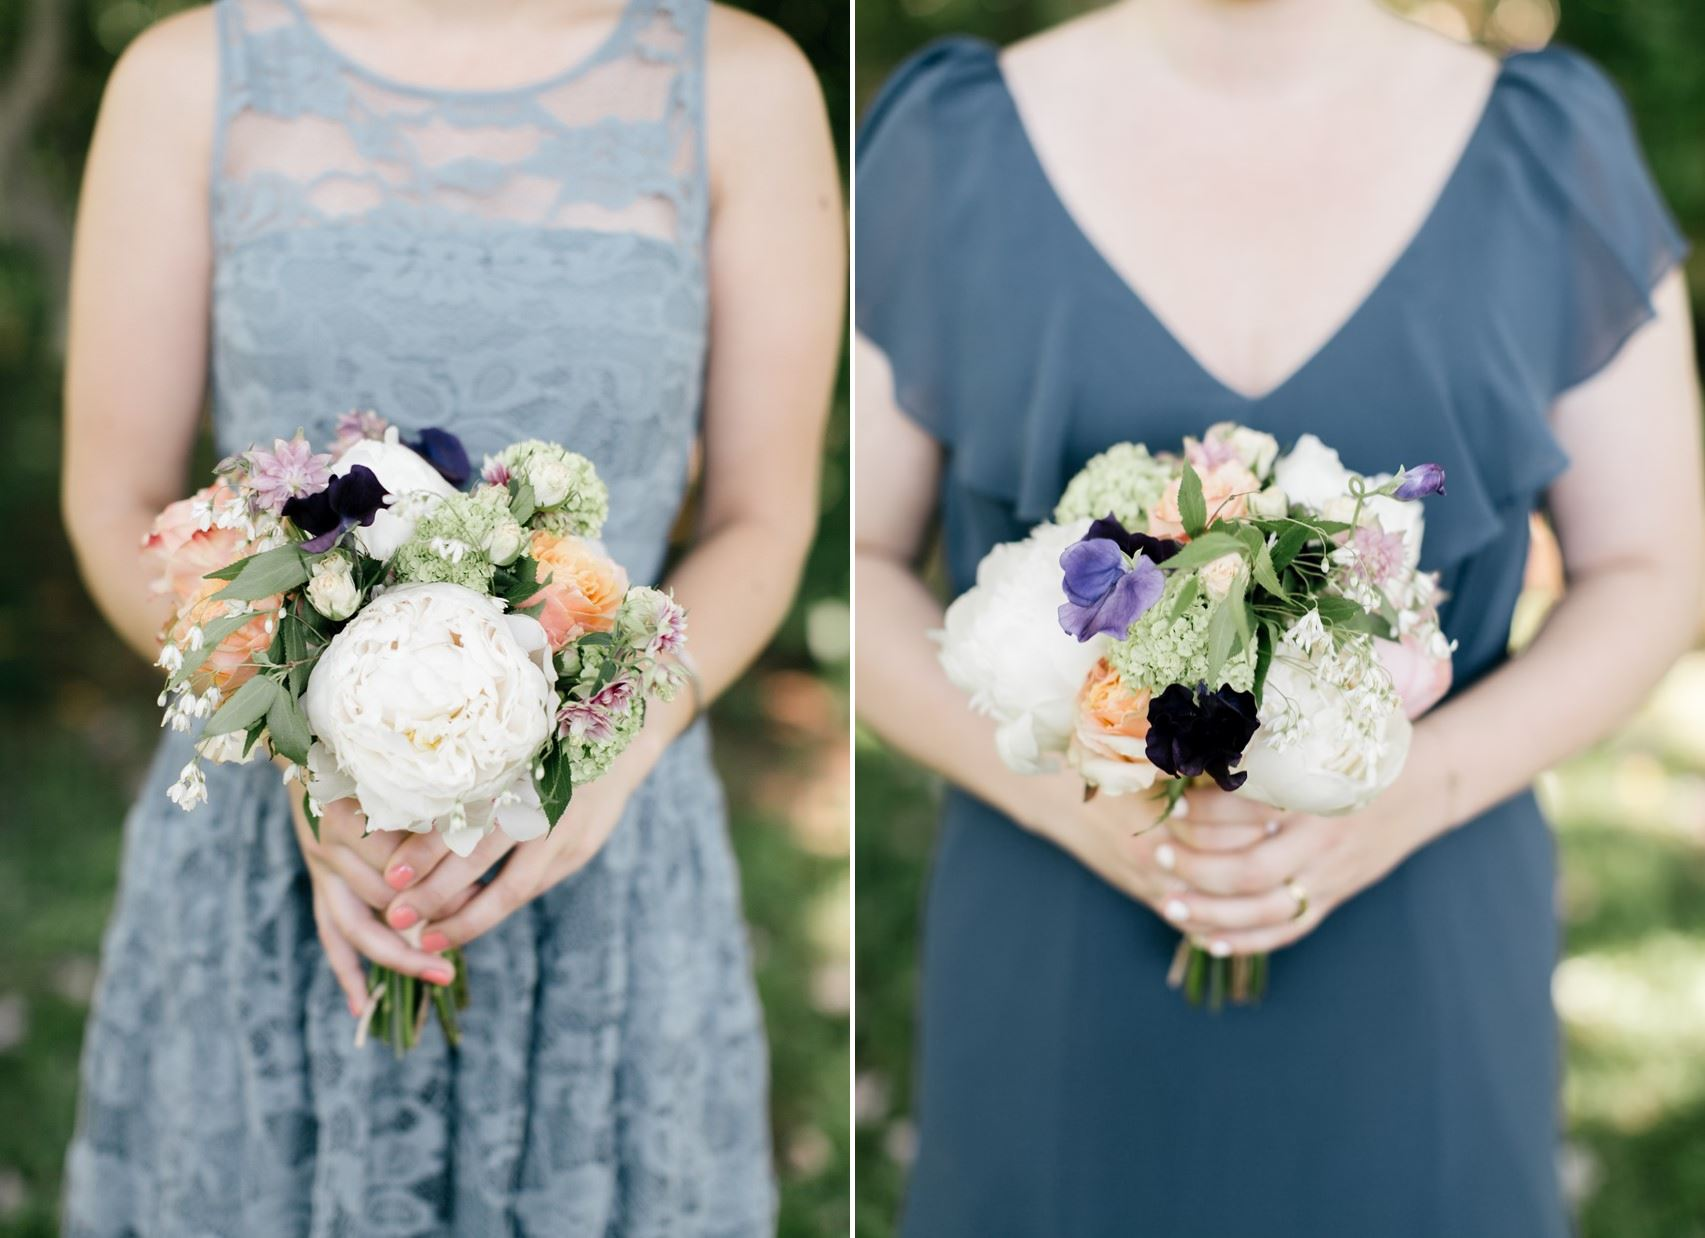 Romantic Bridesmaids Bouquets - An Enchanting Early Summer Garden Wedding